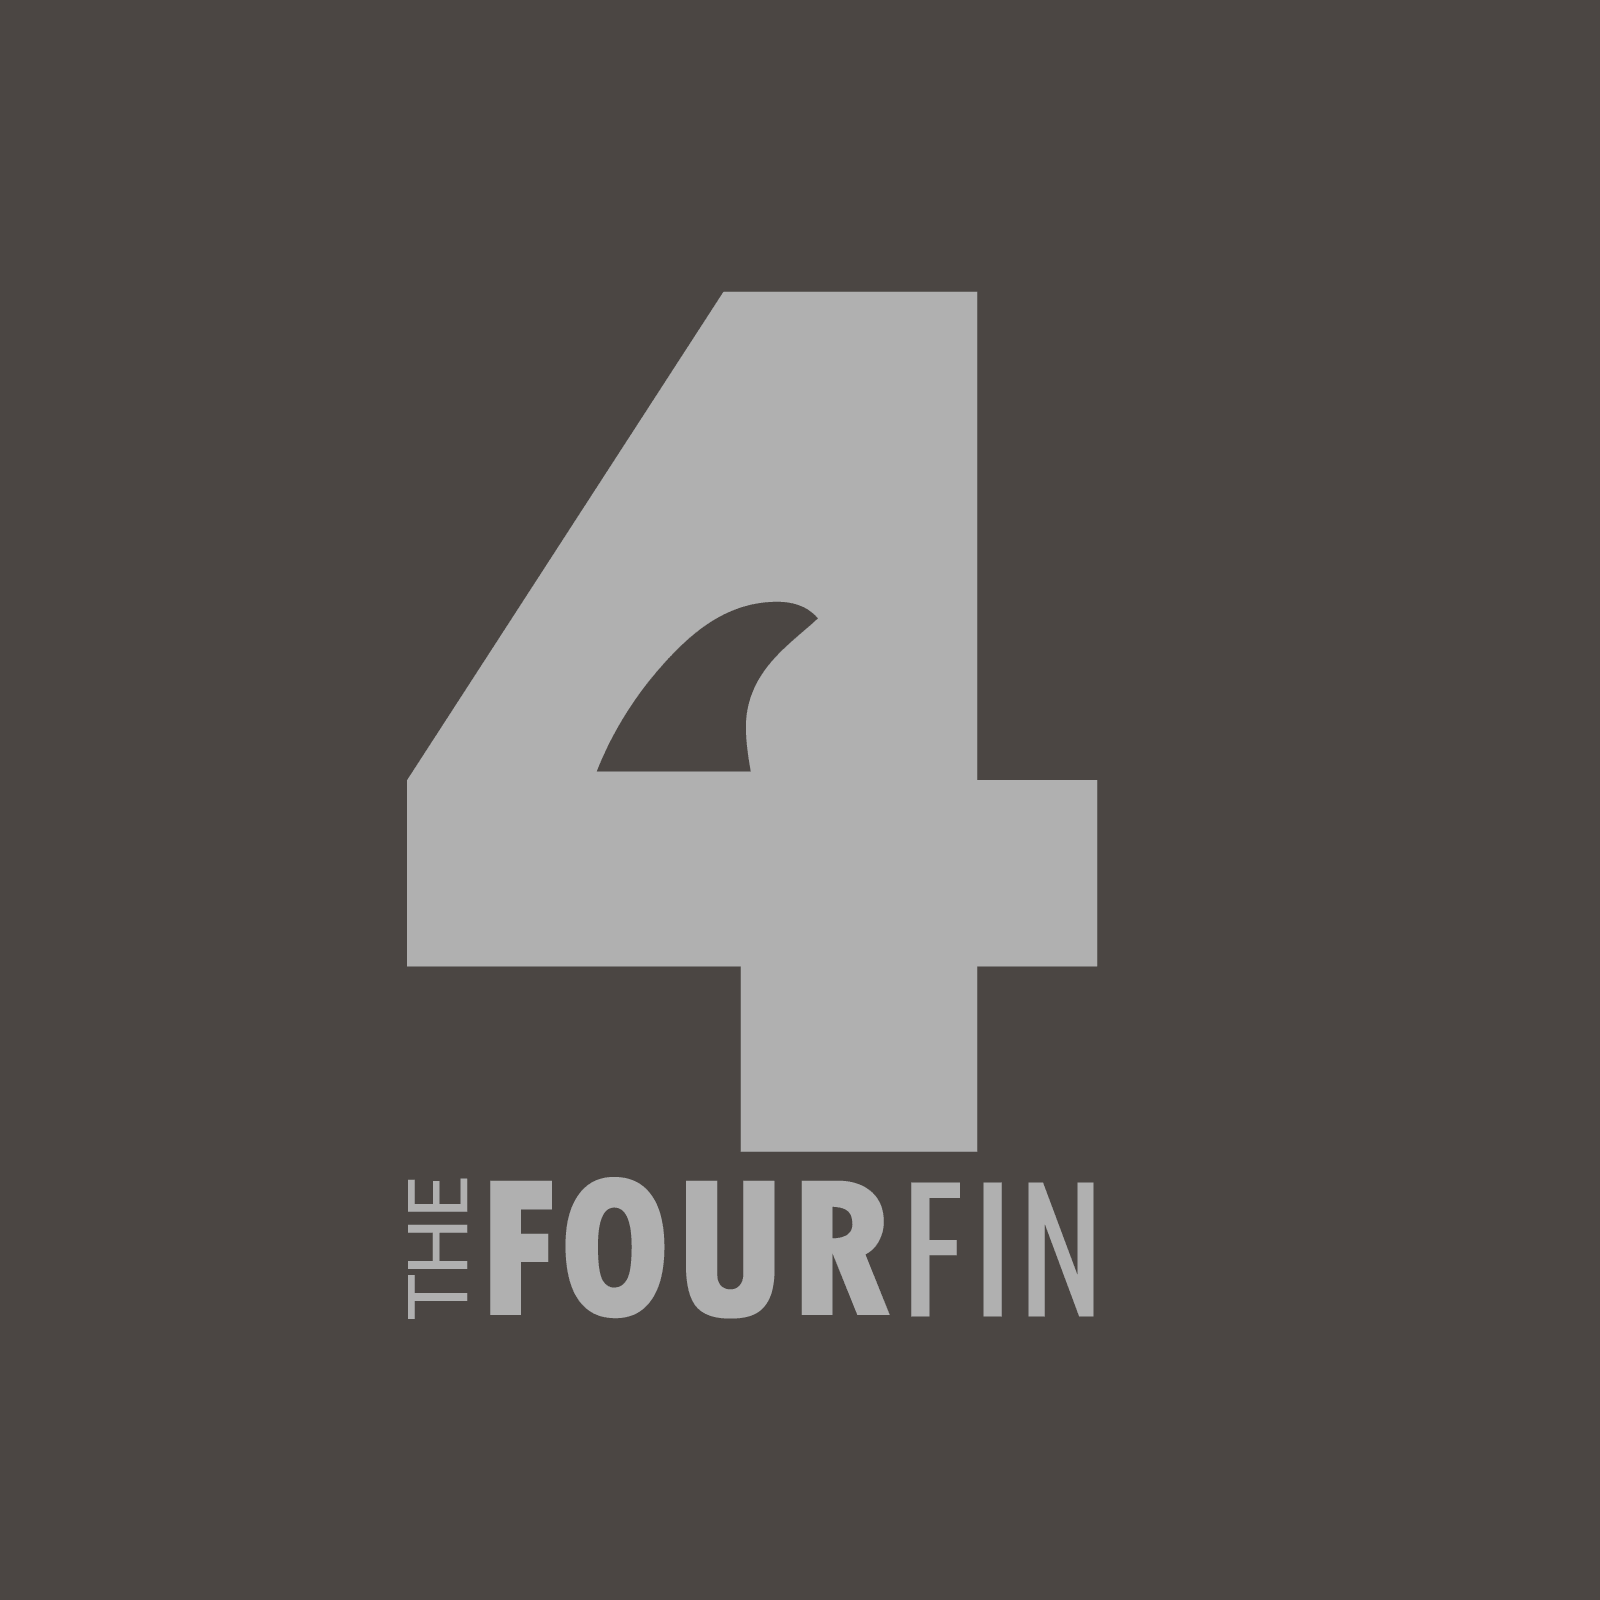 The Four Fin